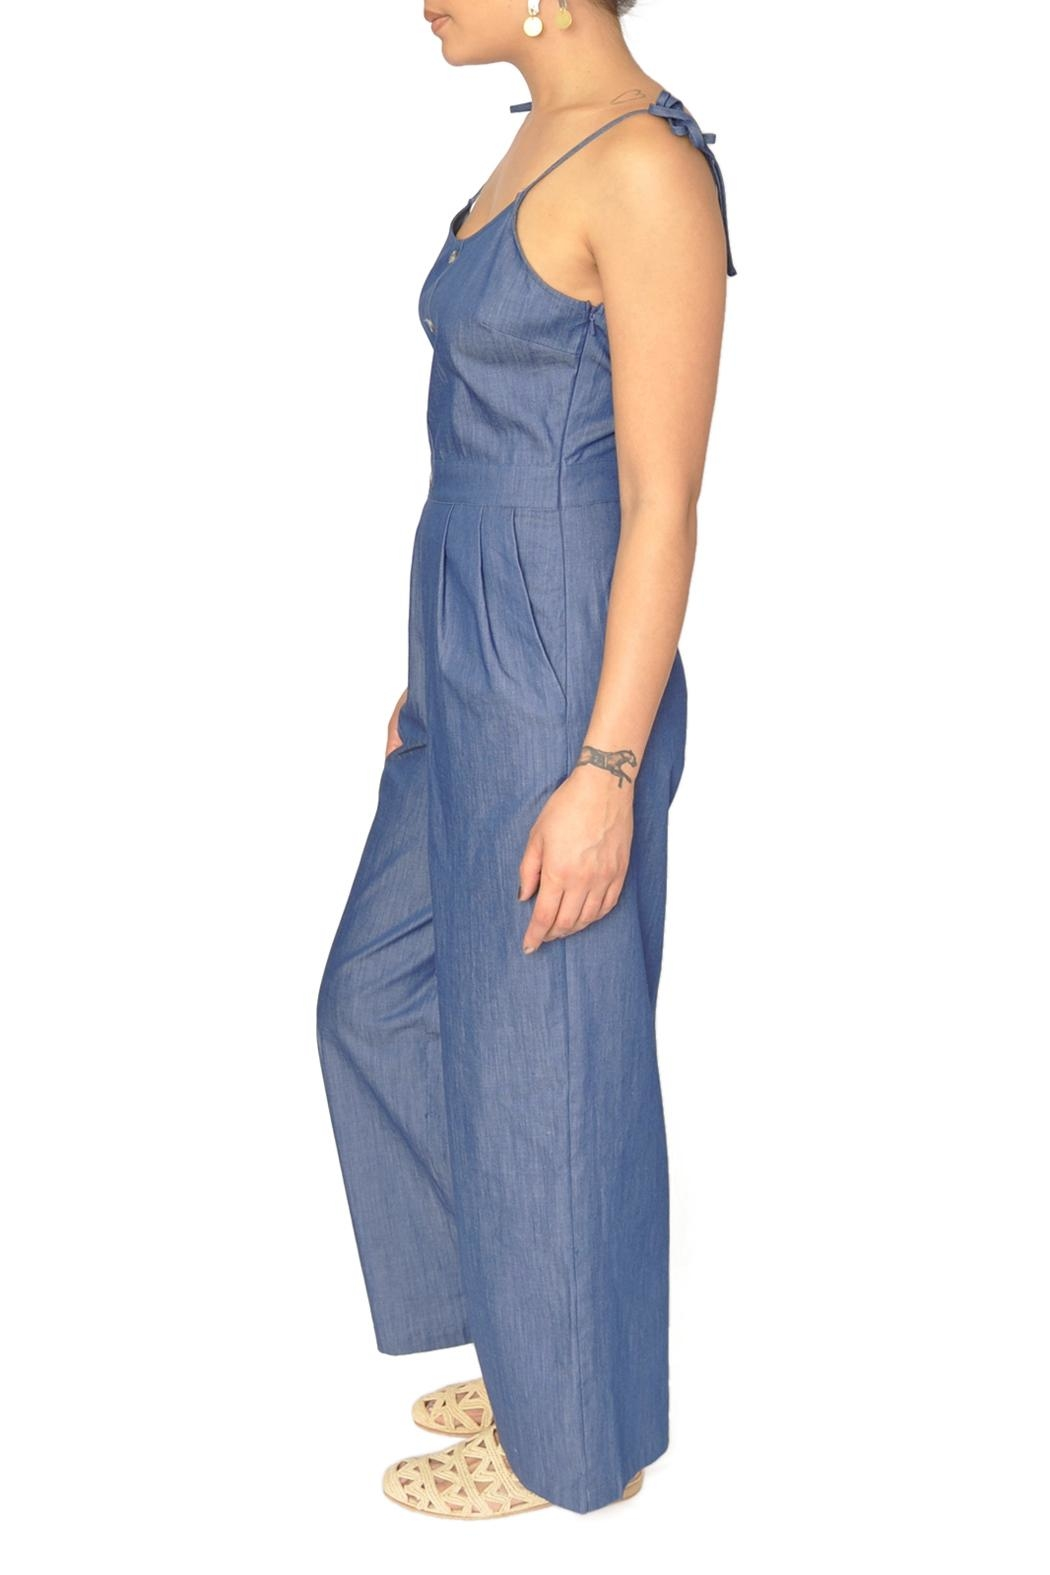 EVIDNT Chambray Denim Jumpsuit - Front Full Image